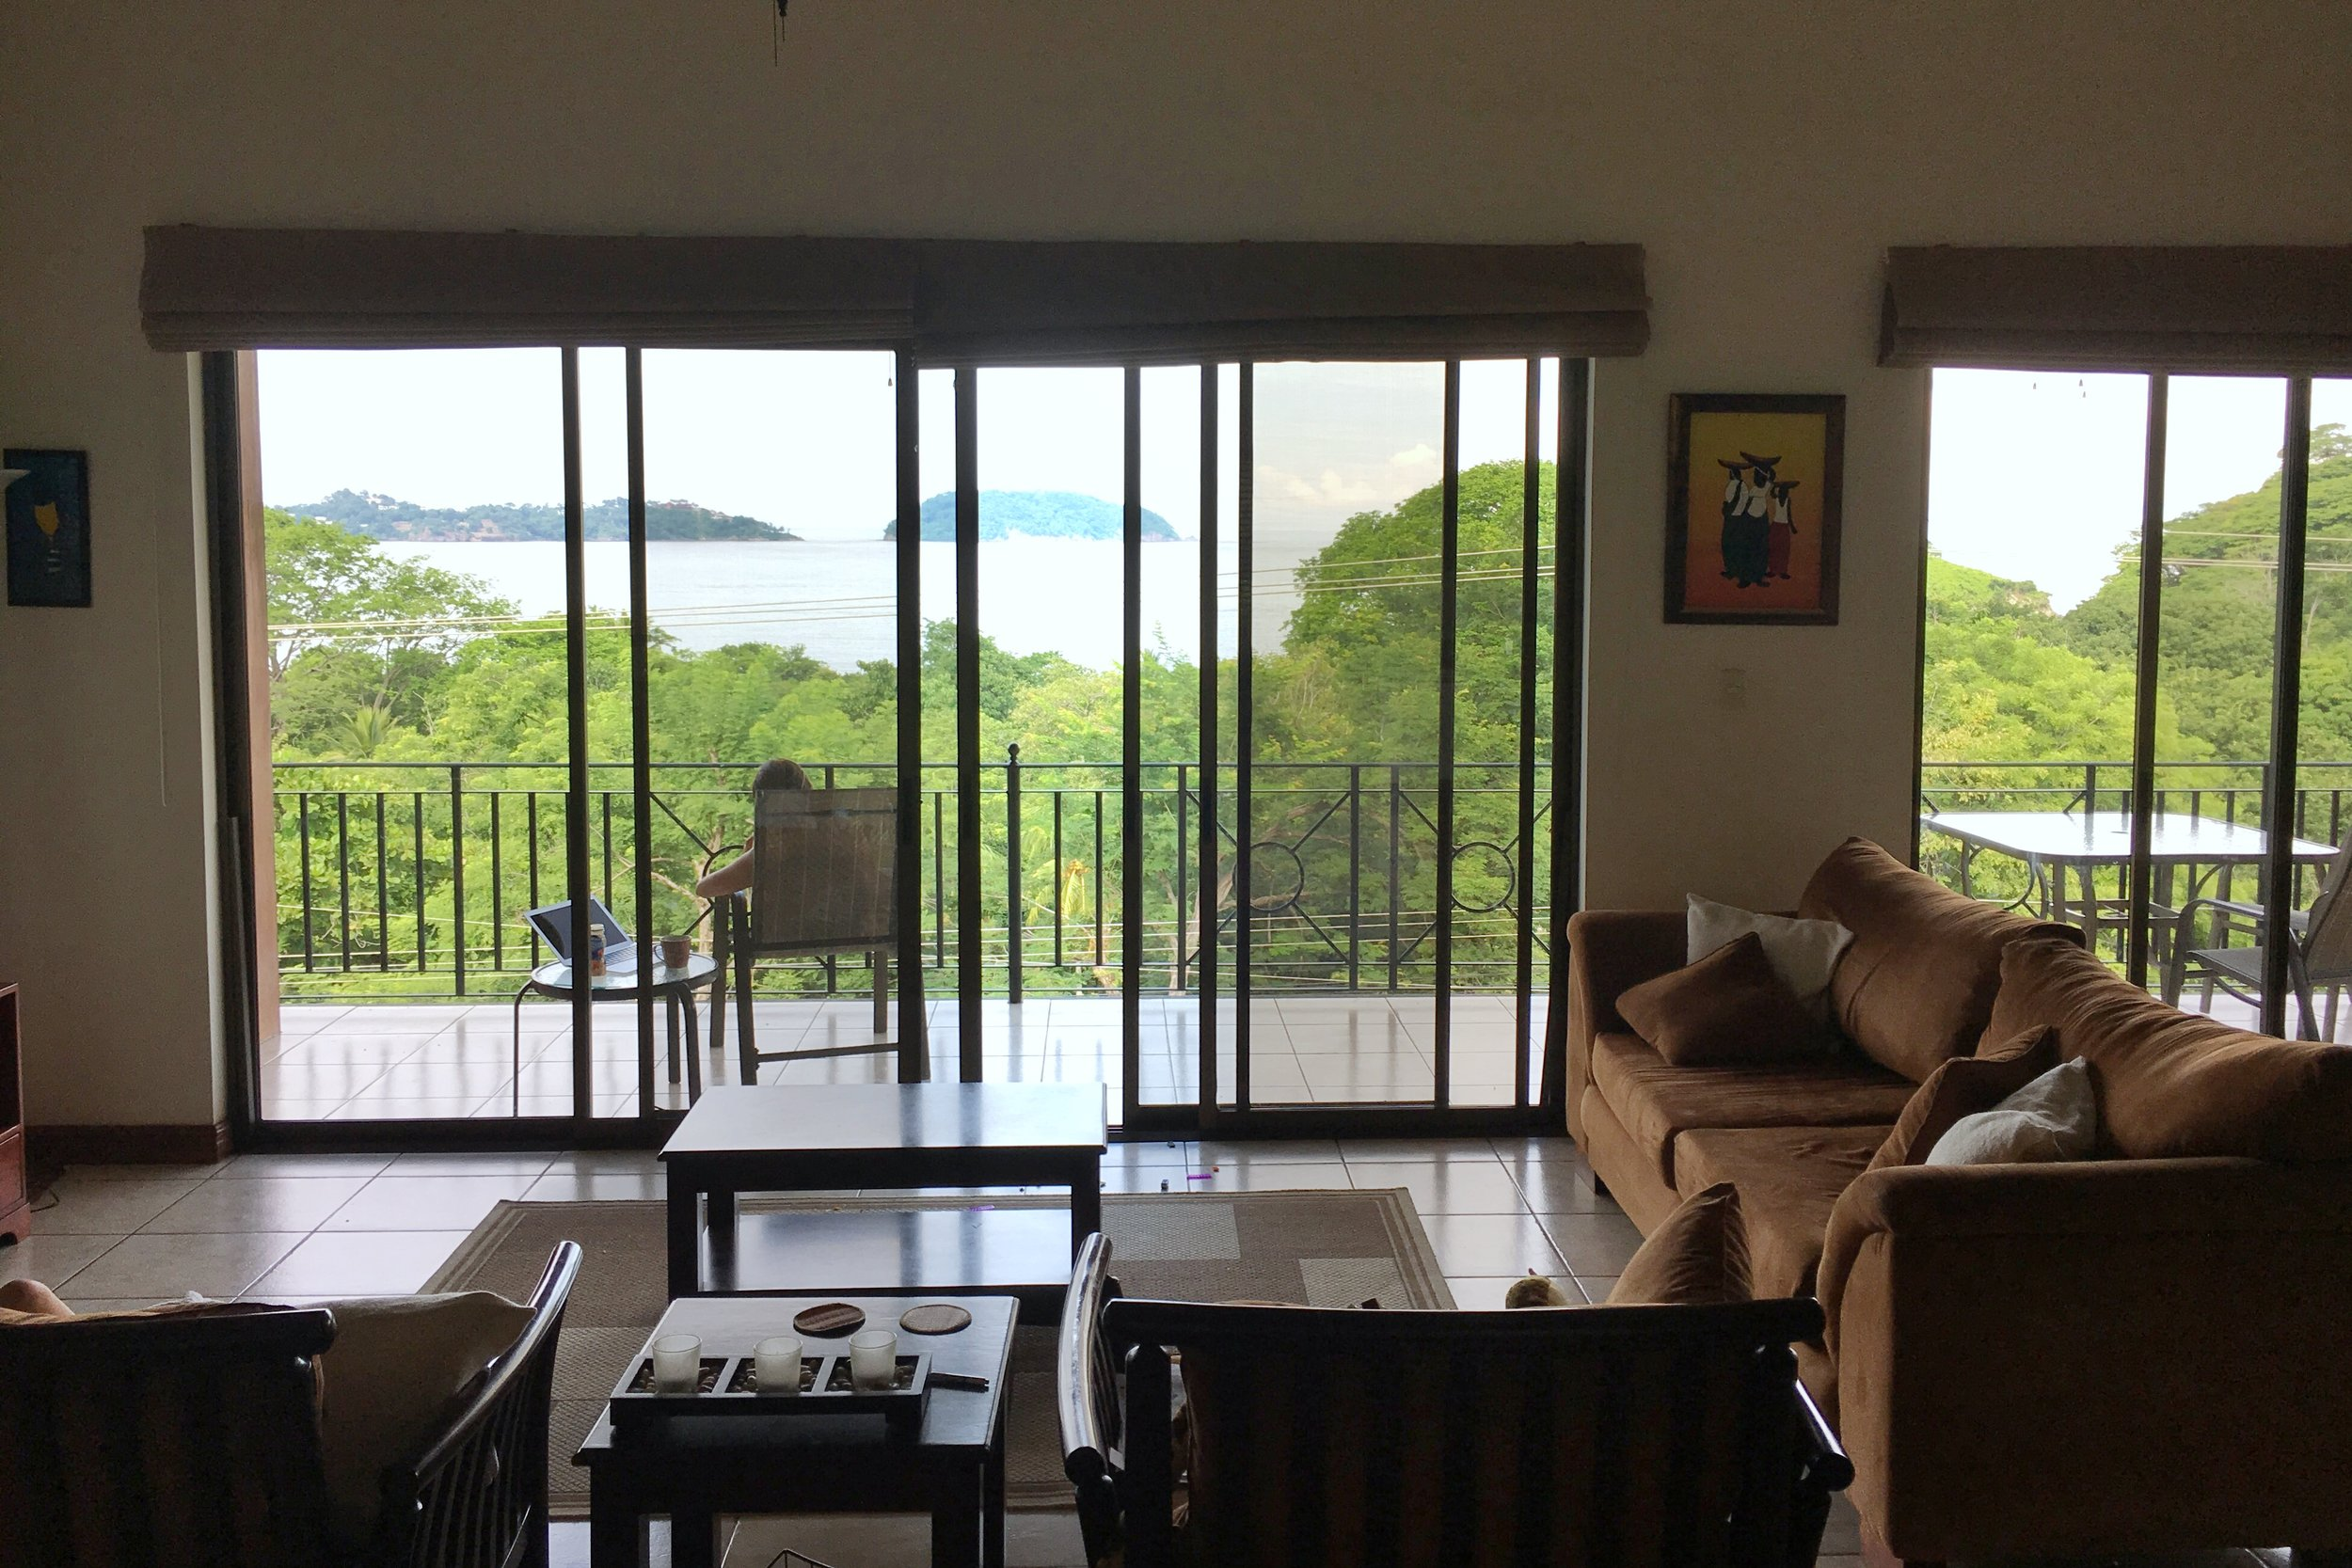 The inside of our first home in Costa Rica.